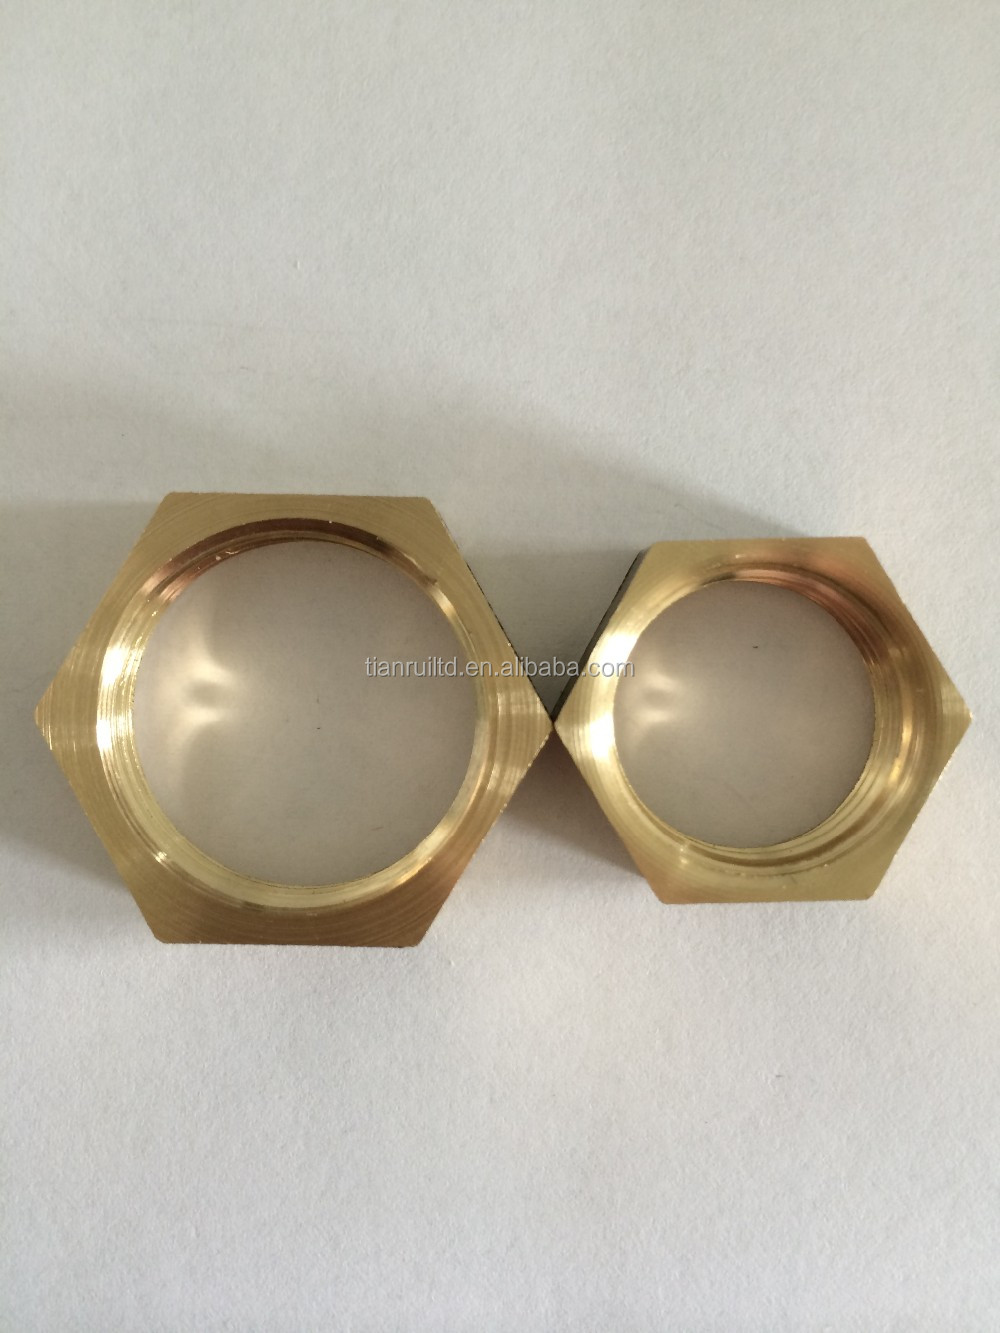 "<strong>G</strong> 3/4"" Brass Hexagon Nuts"